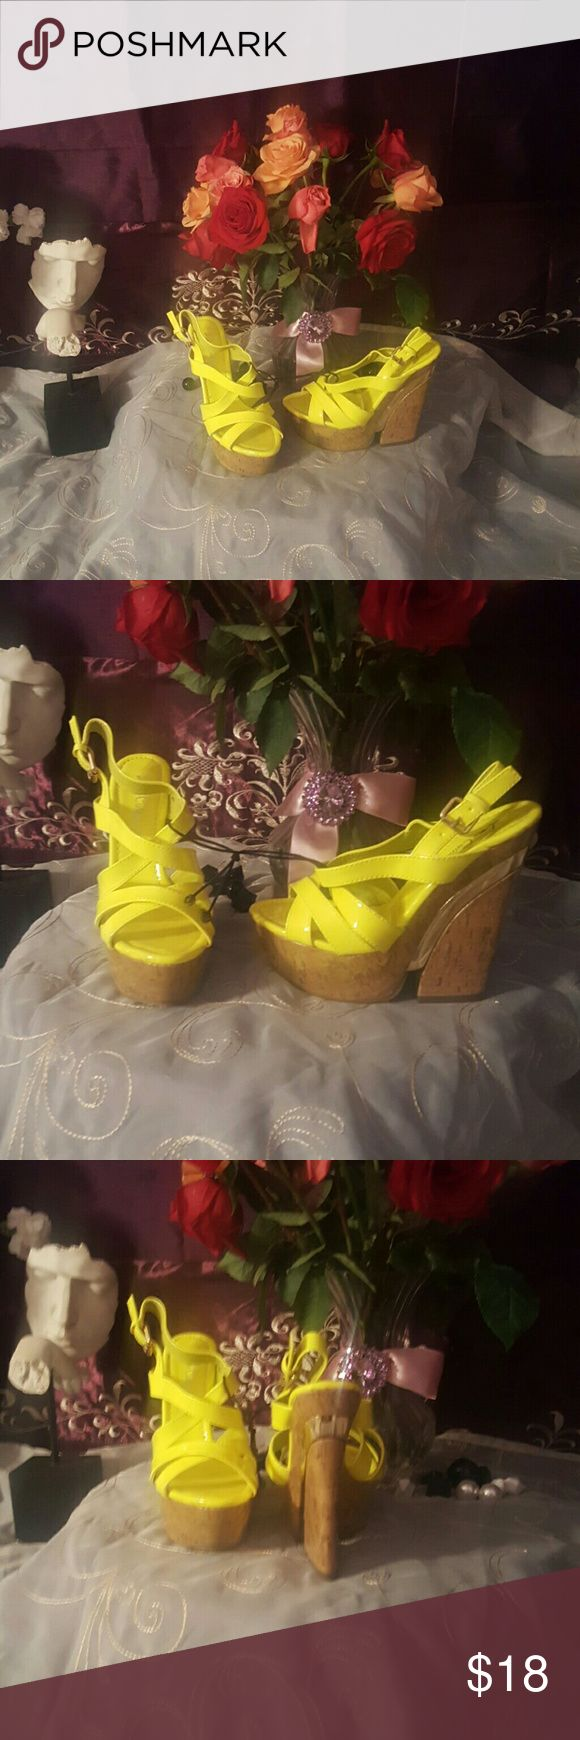 ☉Bright yellow strappy wedges☉ 4.5 in cork heel with gold trim Shoes Wedges